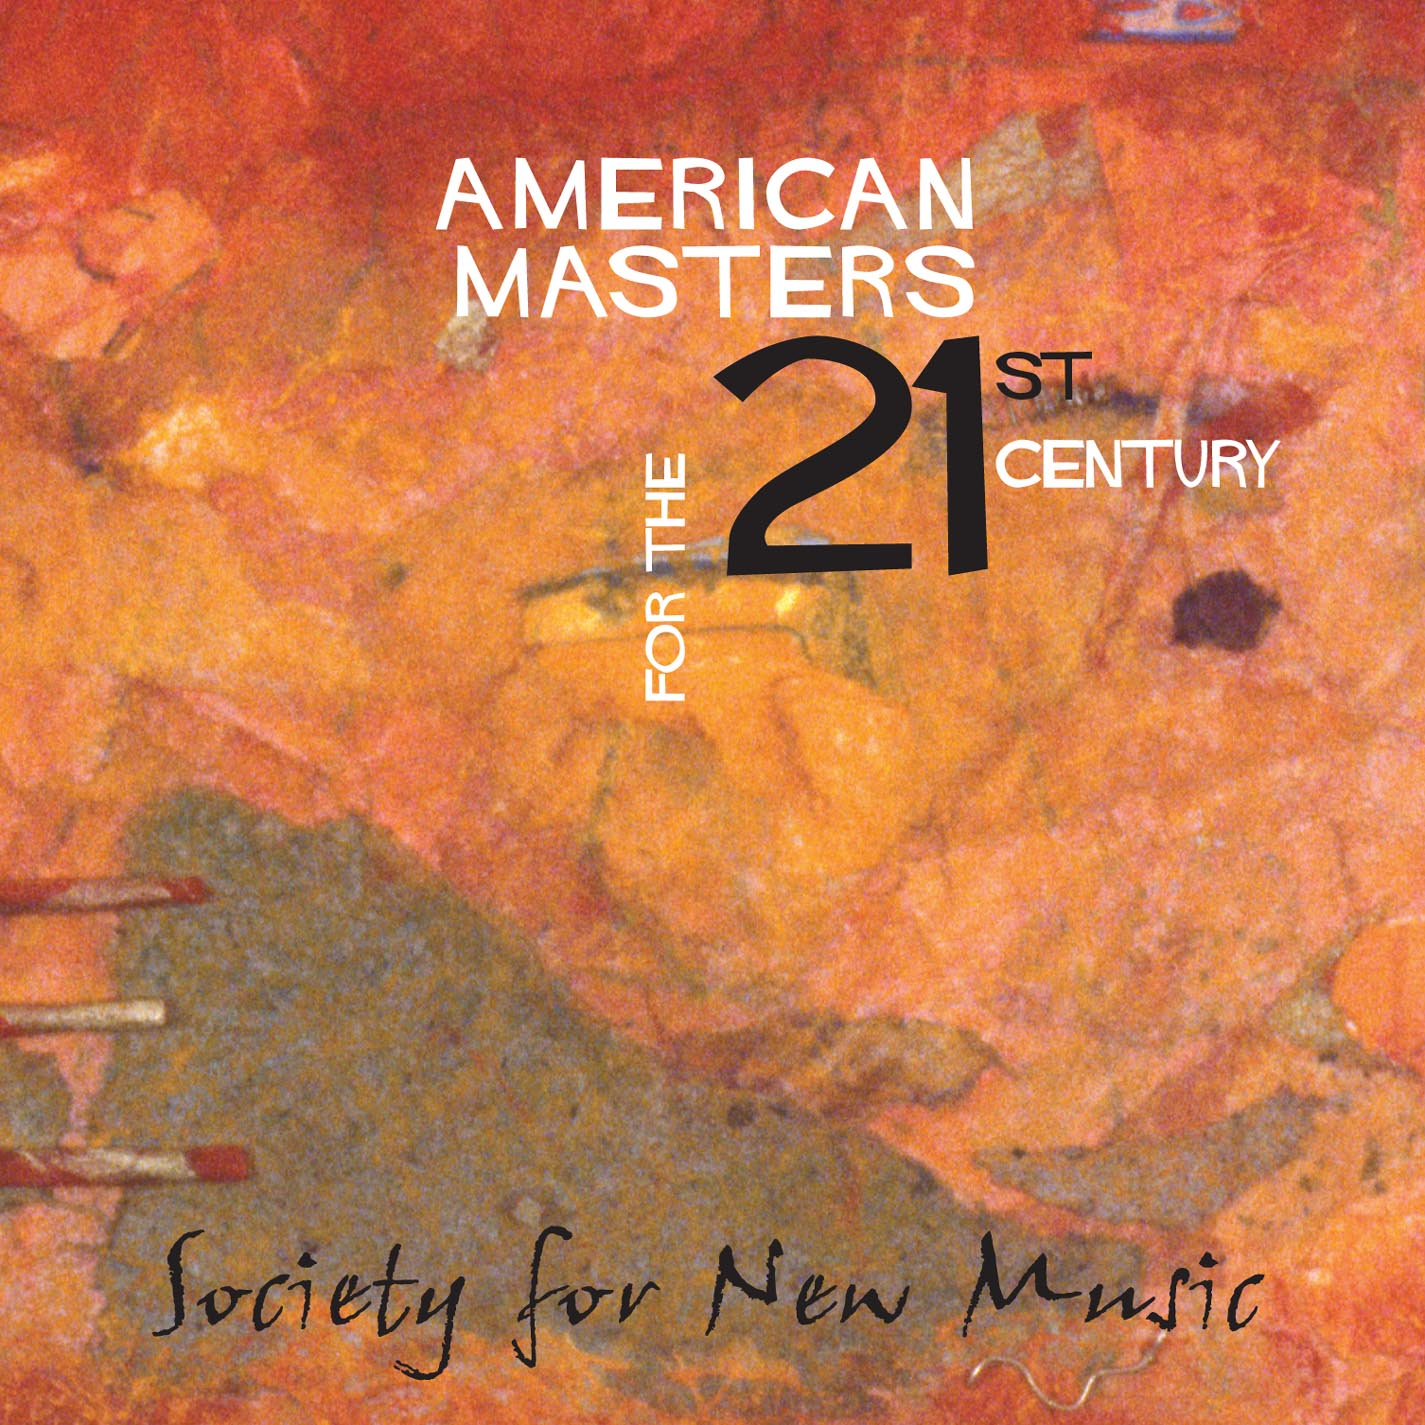 the 21st century american An exploration into the new ways american theater addresses current political and social issues, evoking empathy or inspiration in the audience.